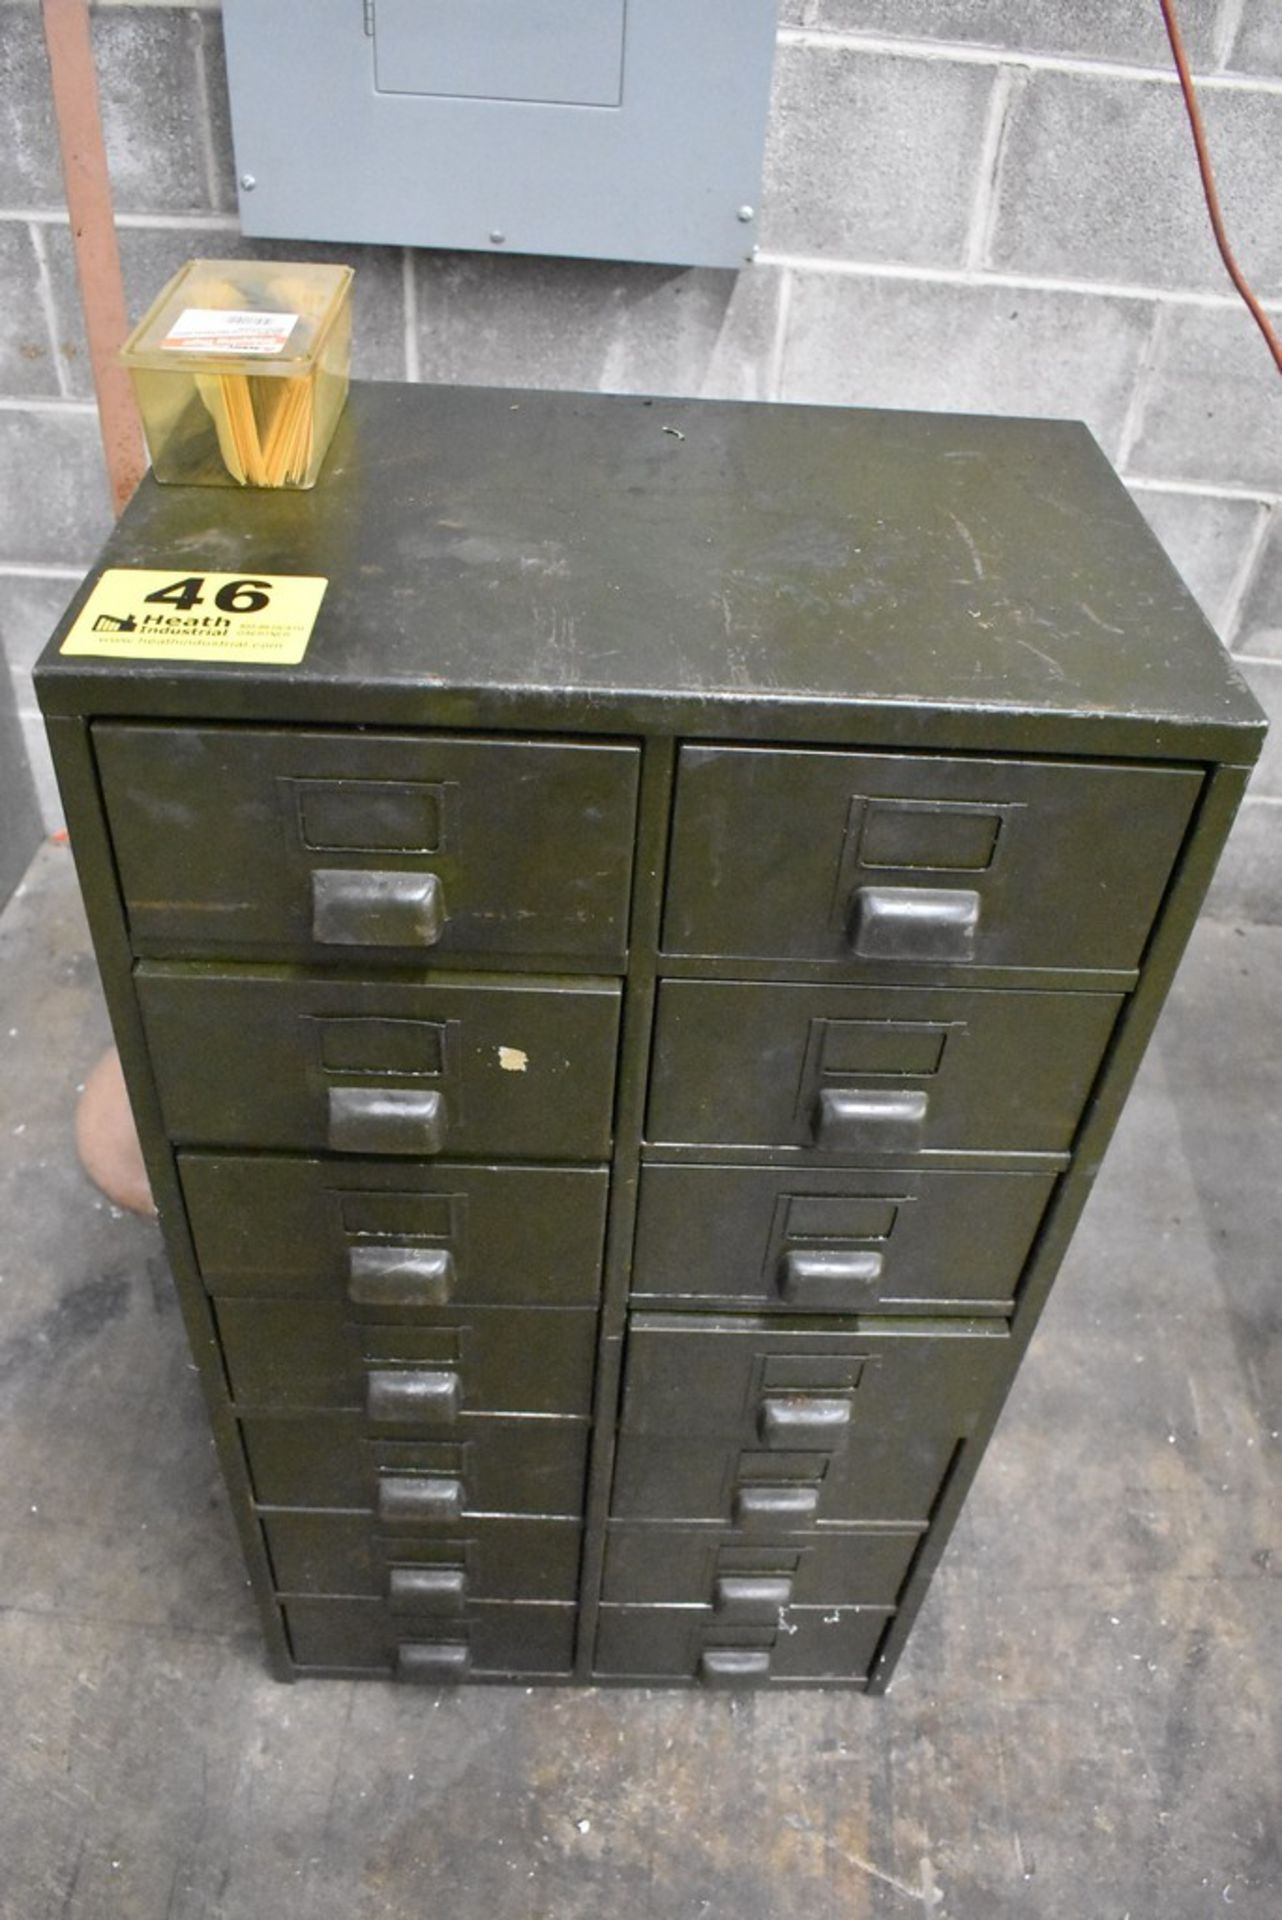 """FOURTEEN DRAWER STEEL CABINET WITH CONTENTS 21"""" X 13"""" X 39"""" - Image 2 of 4"""